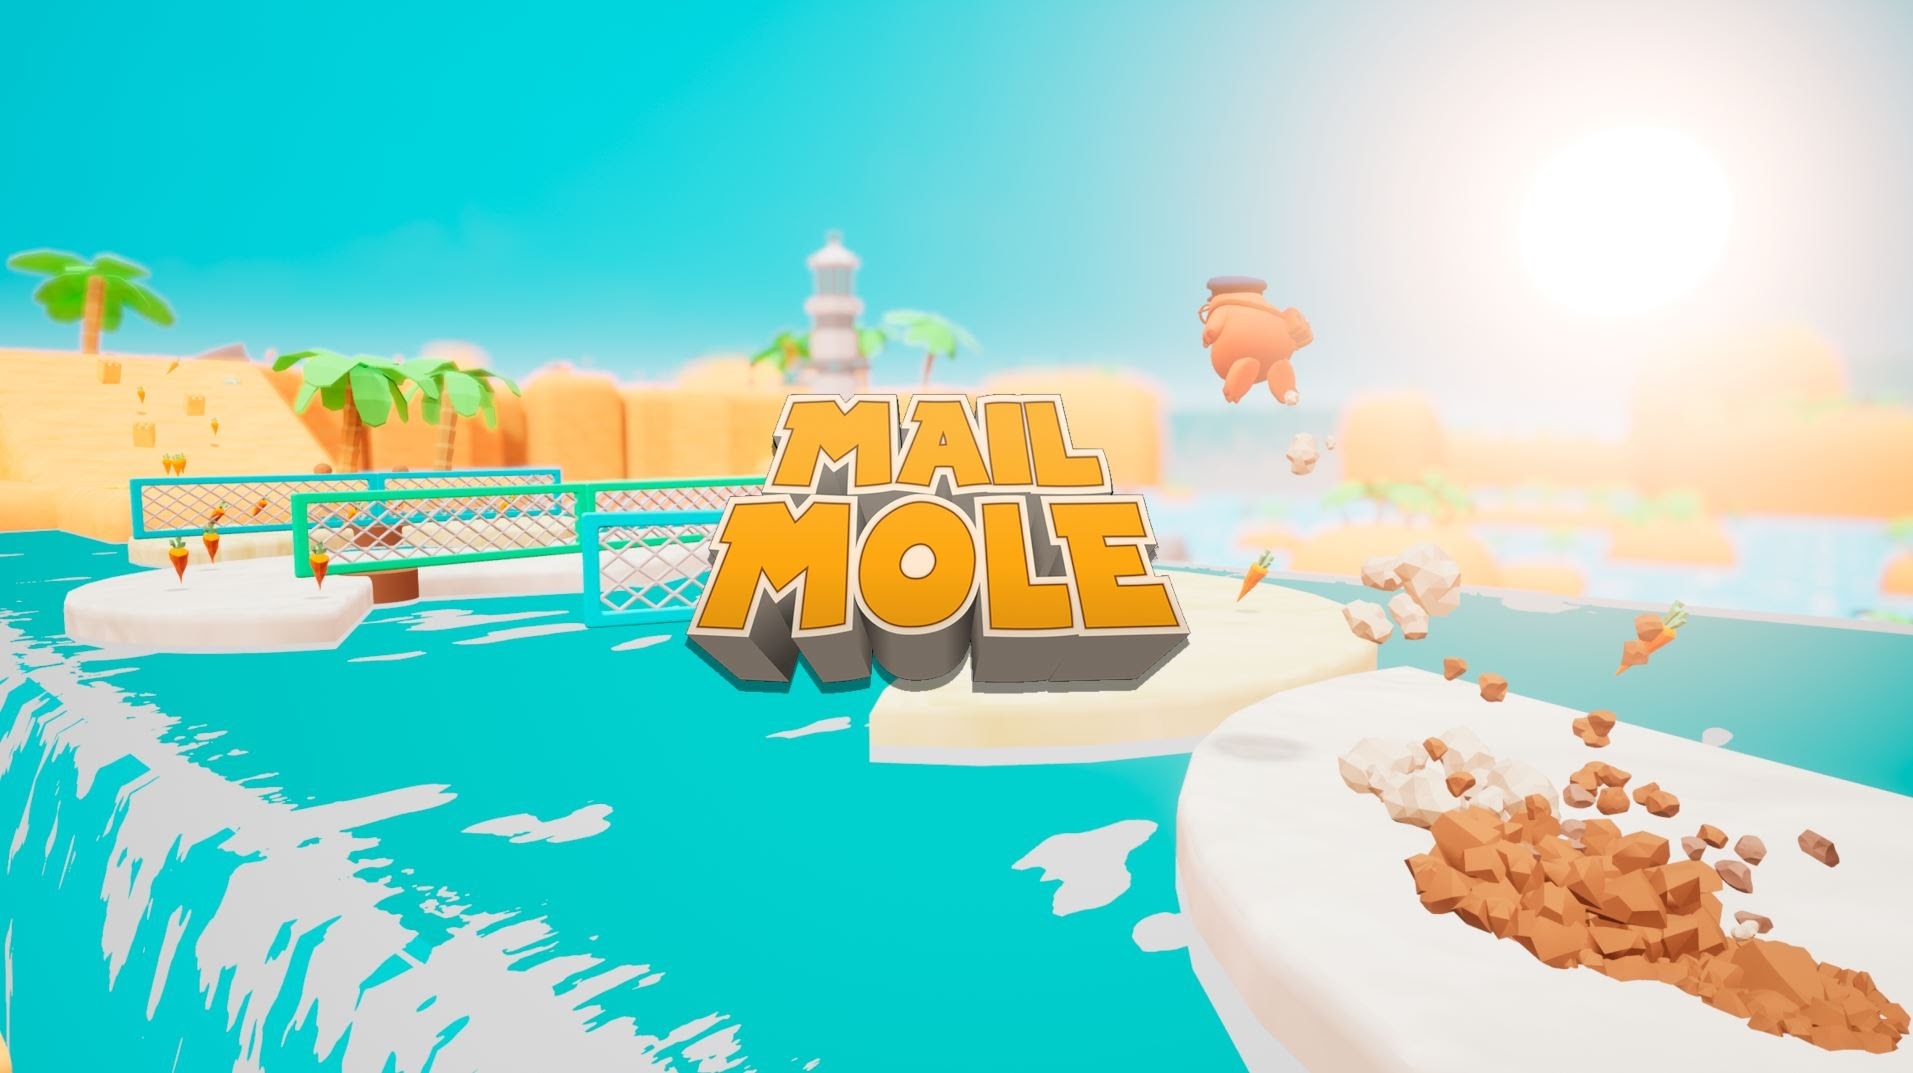 Mail Mole is an Excellent Adventure Game Which Embeds the Best of Platforming